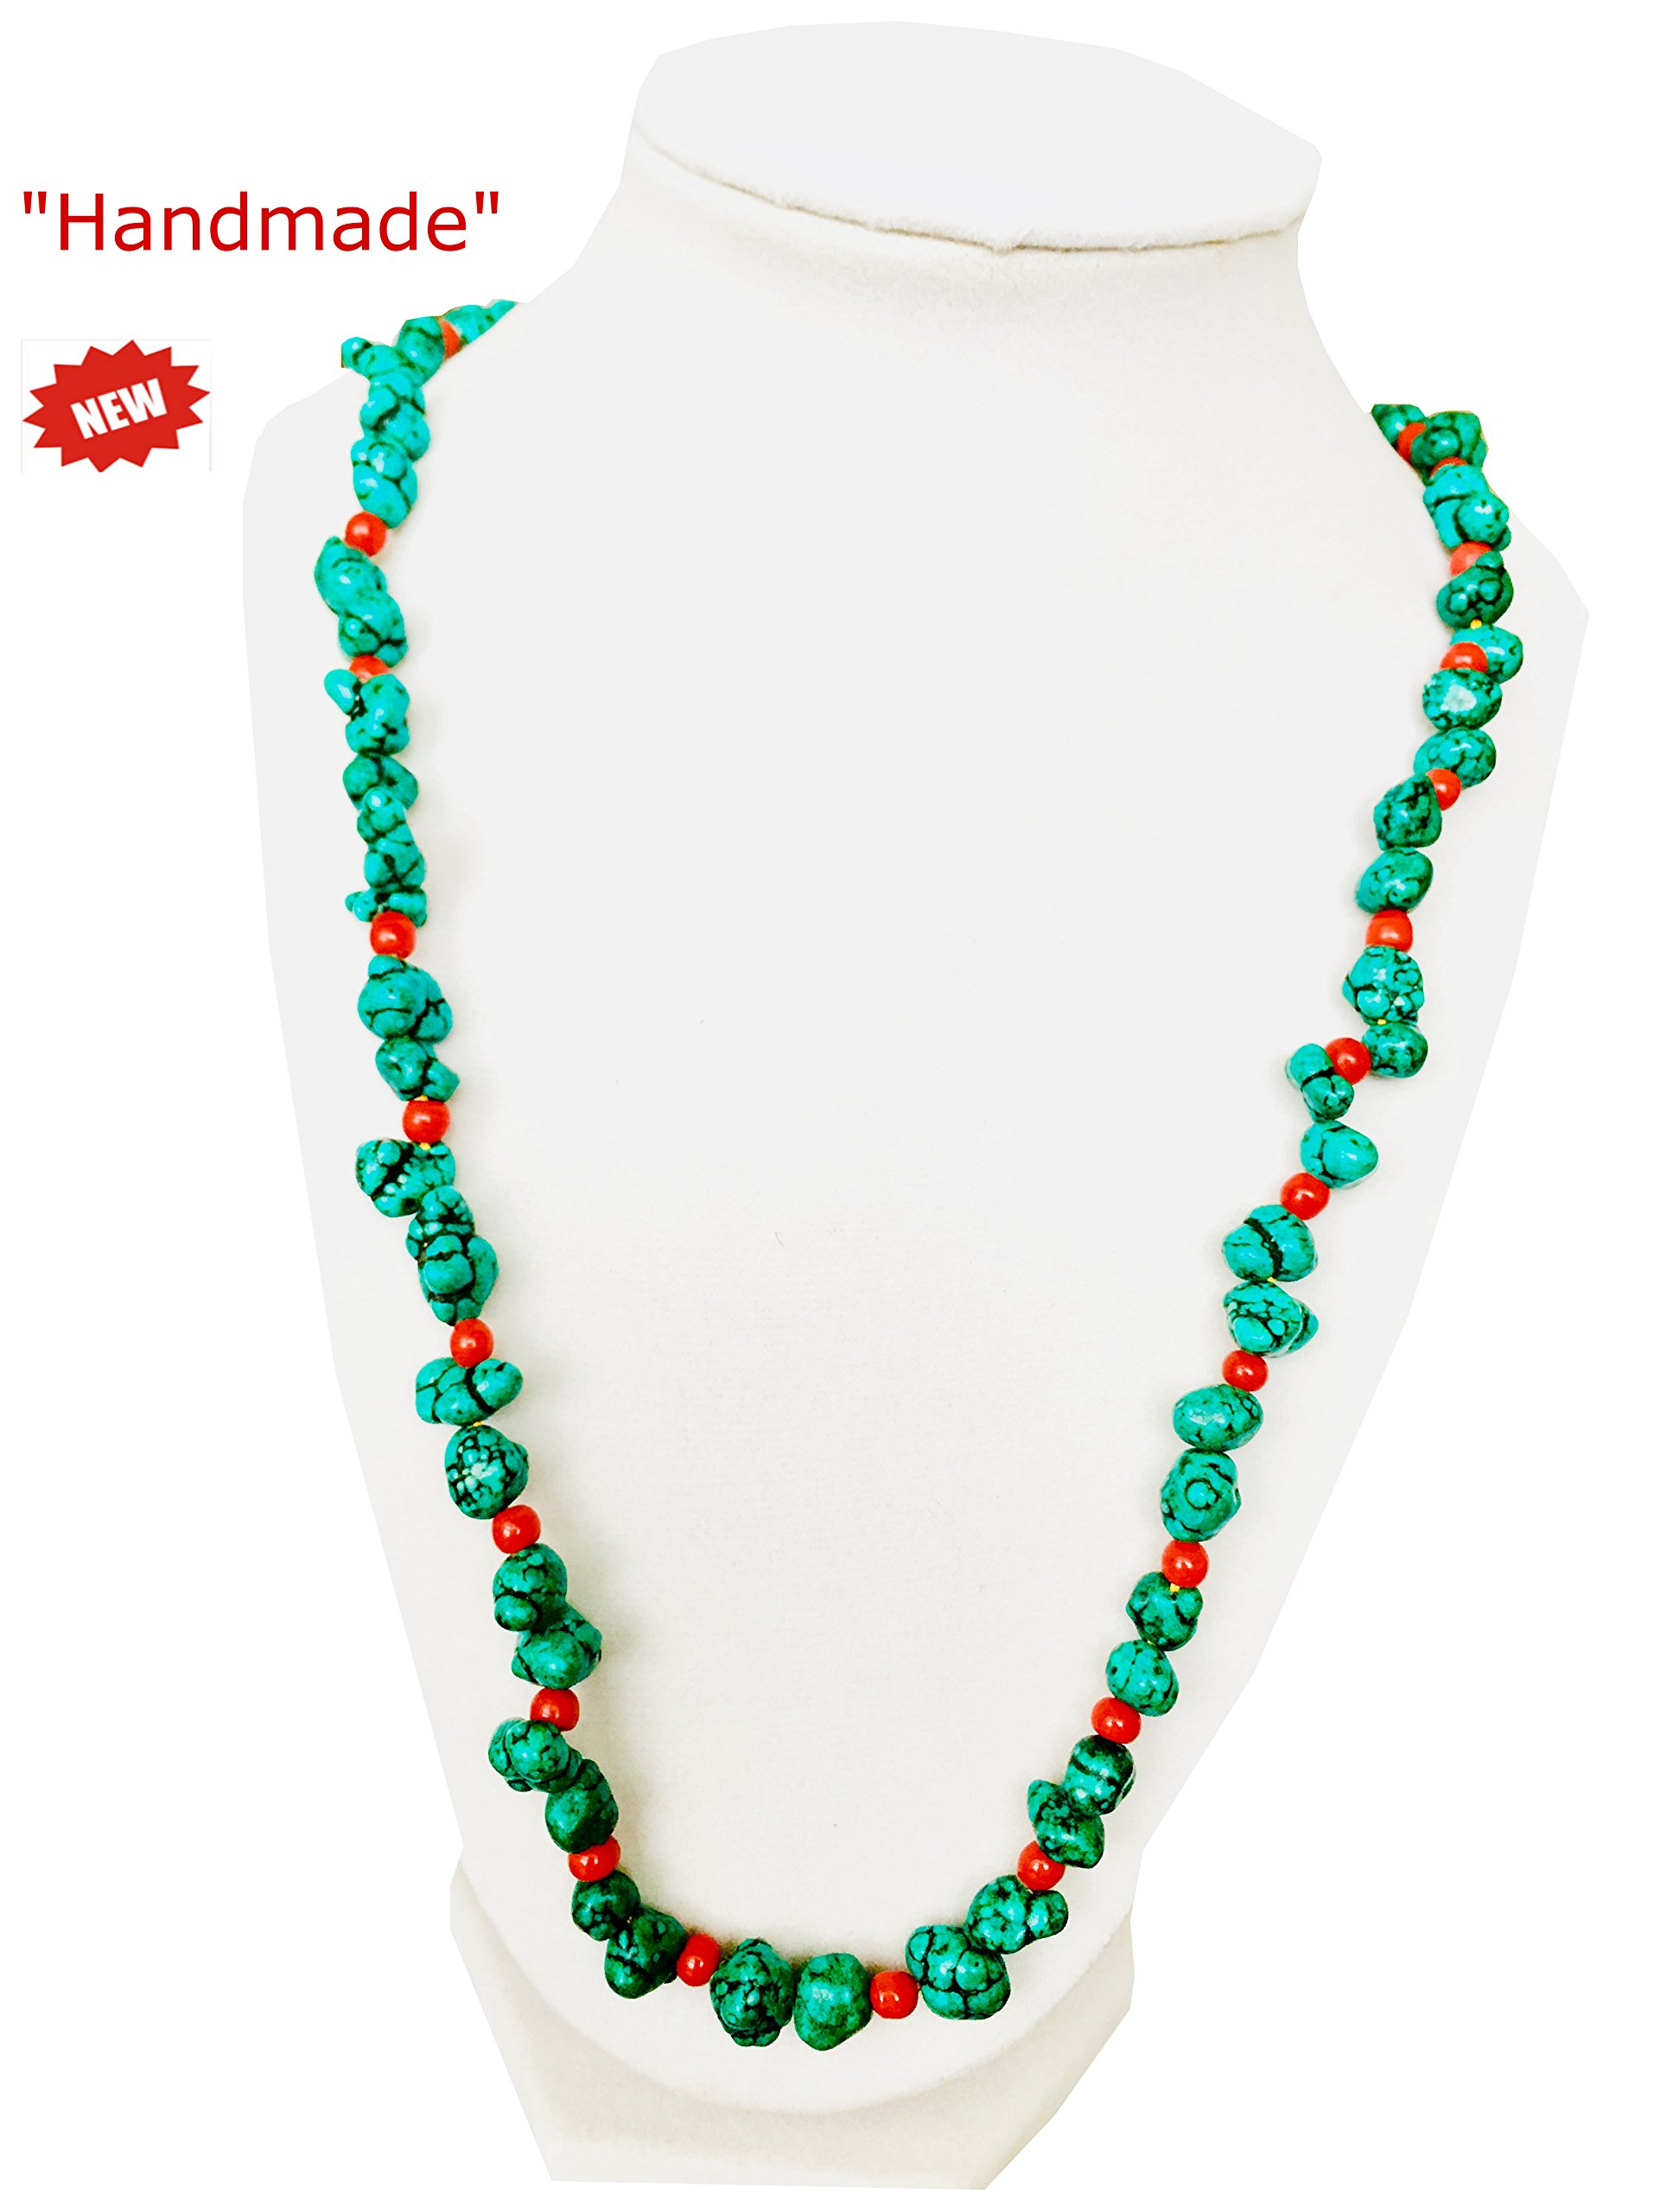 Himalayan Handmade Large Necklace Of Quality Red Corals & Turquoise Comes With Gift Box